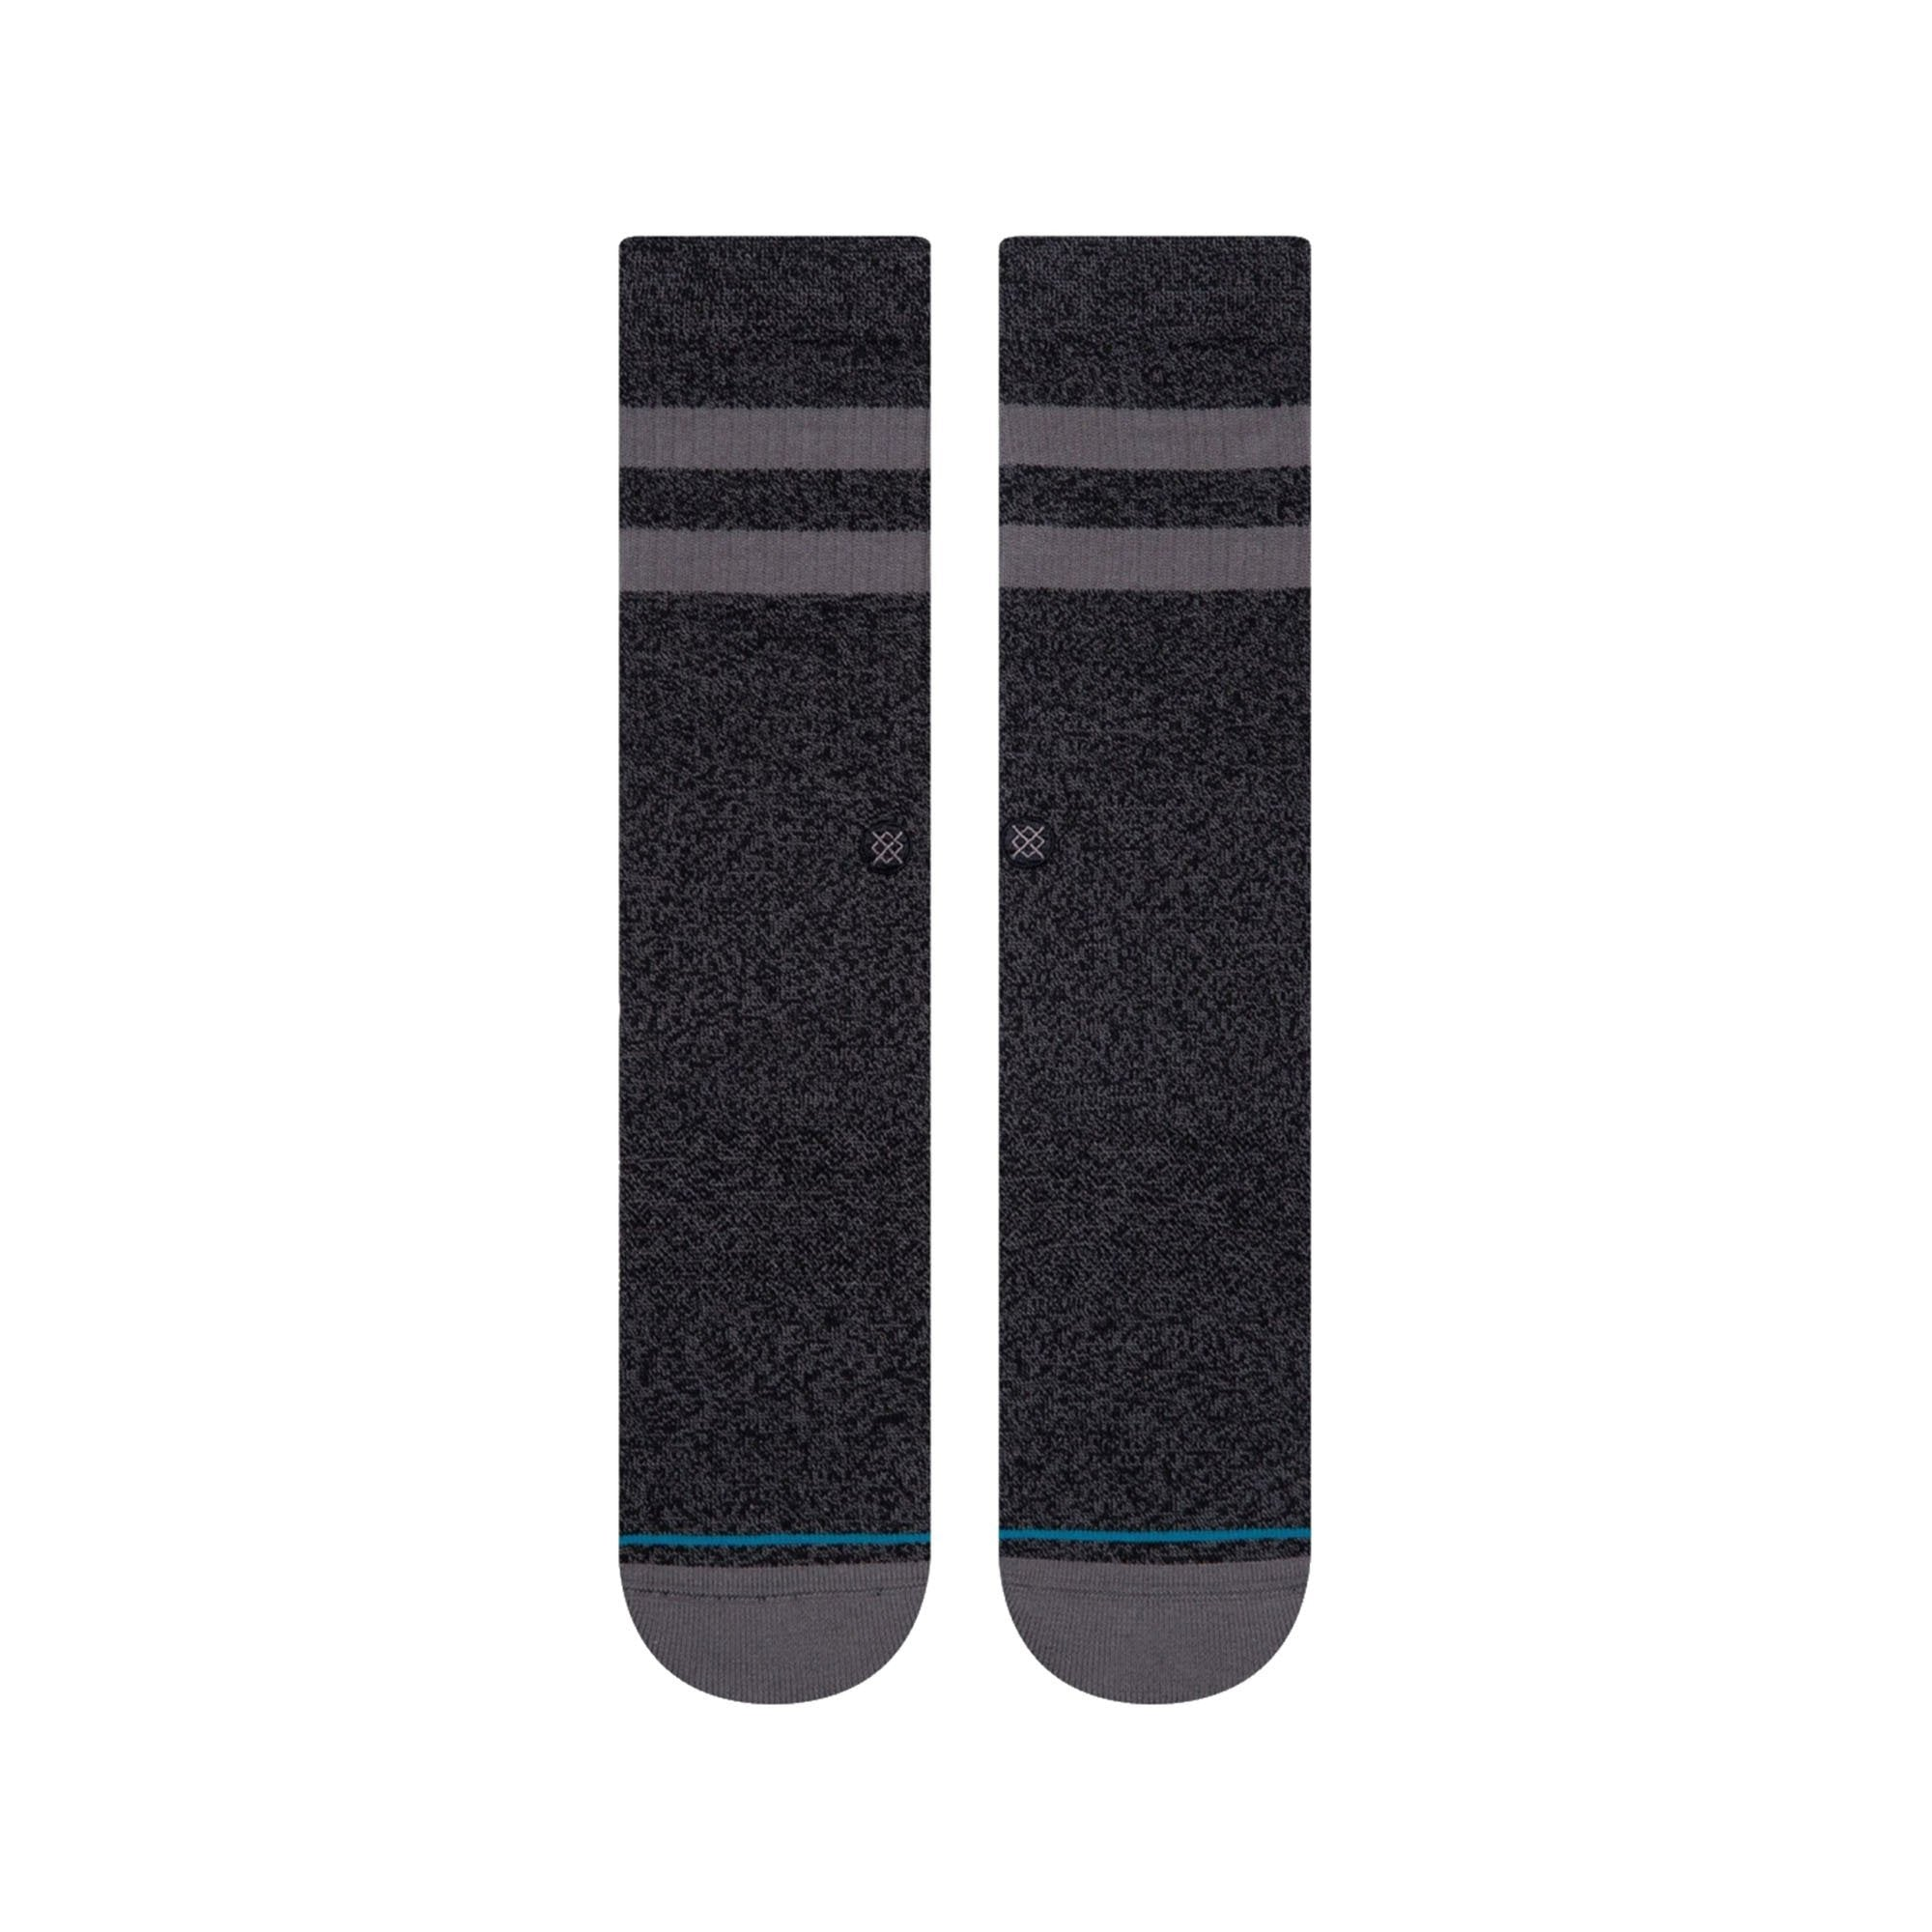 Calcetin Stance JOVEN GREY Accesorios FroensCL